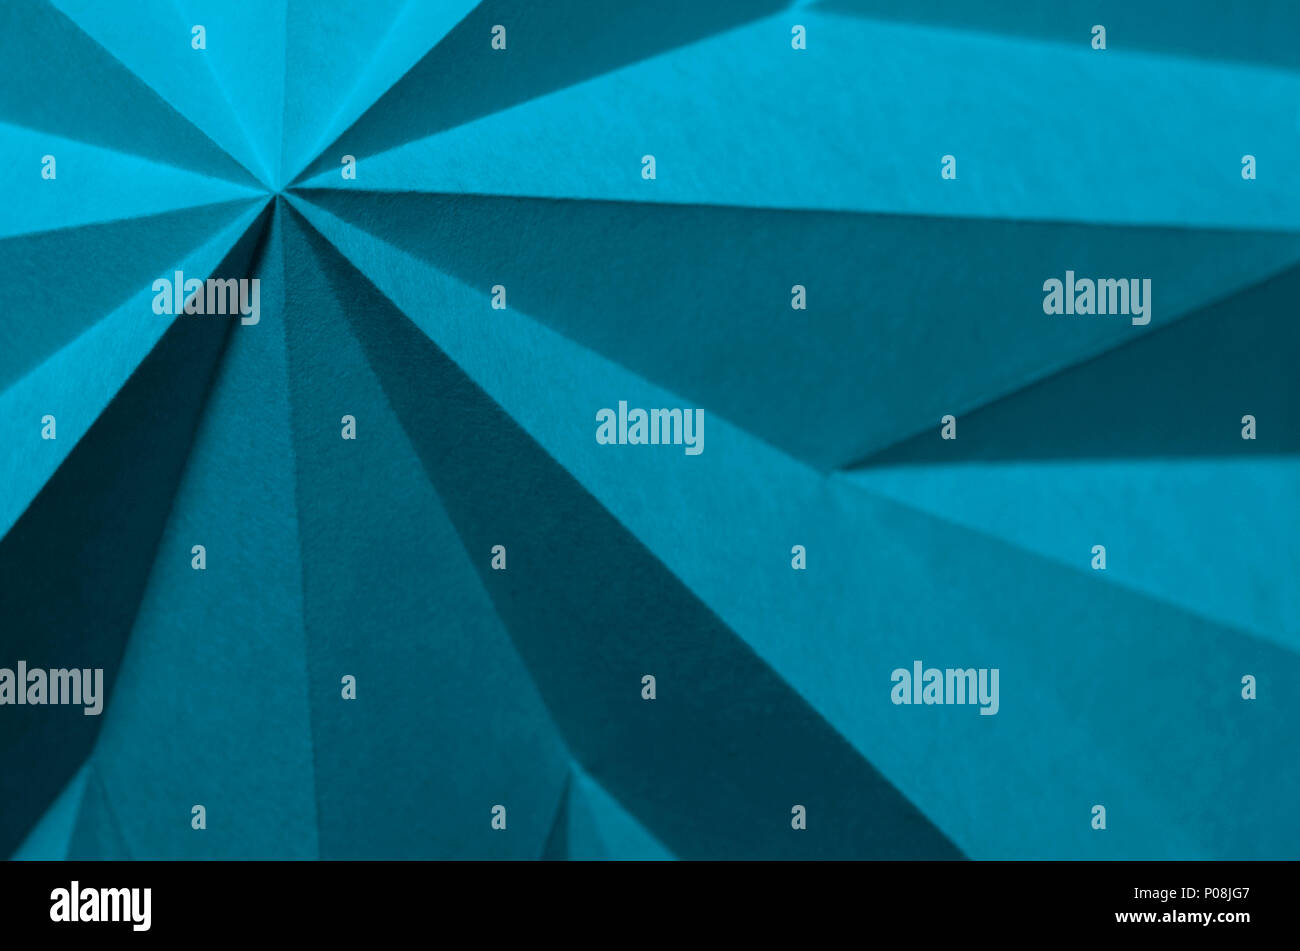 Blue Moon Pantone 17-4328. Blue monochrome abstract paper origami angular wallpaper background with negative space for titles. - Stock Image